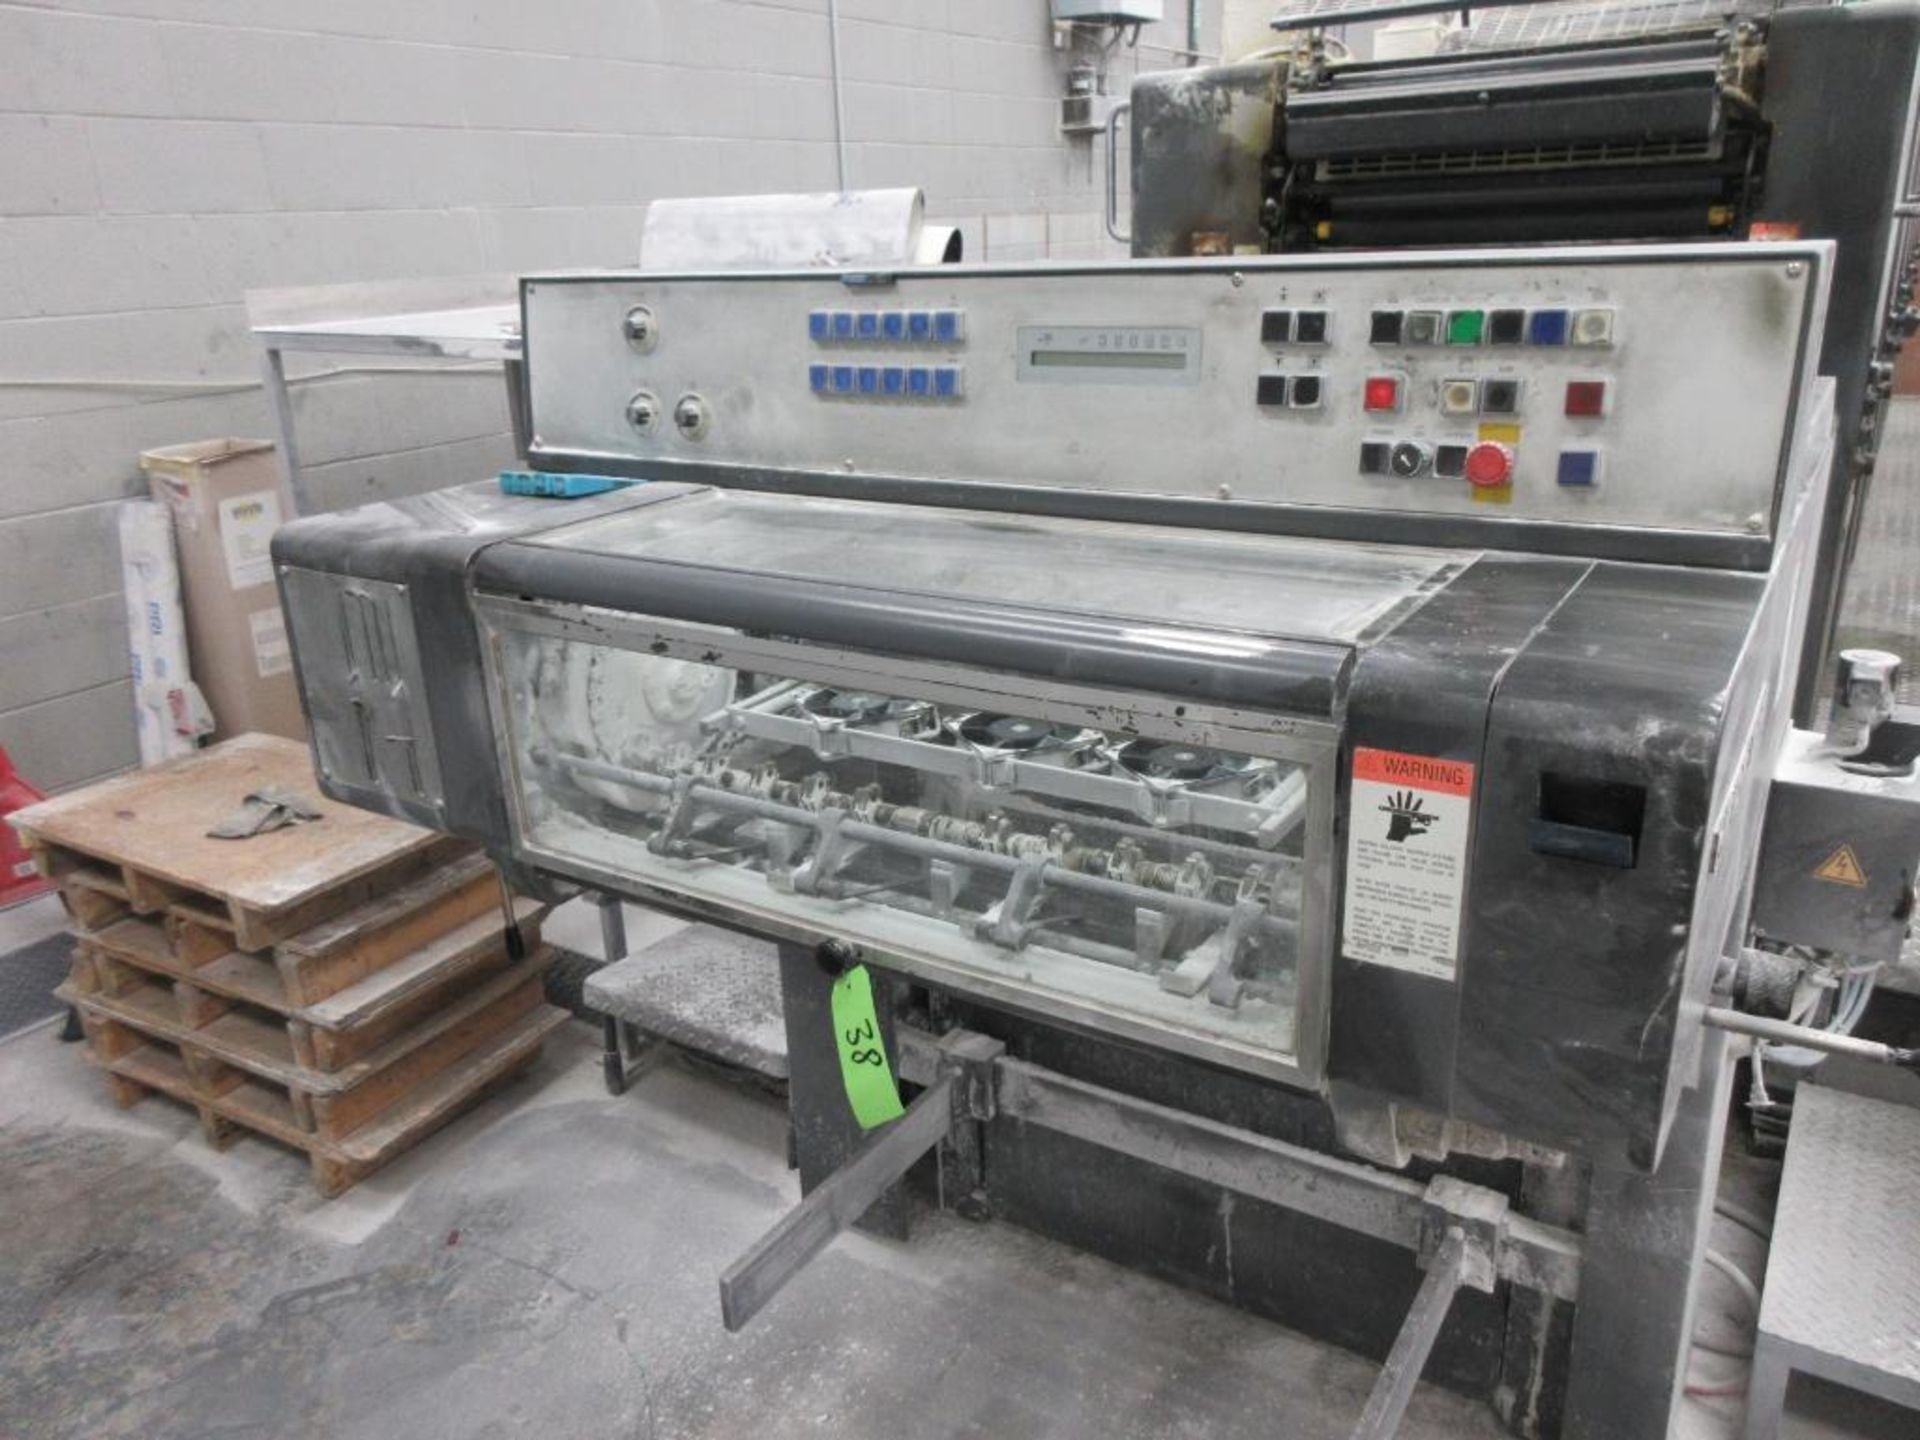 HEIDELBERG MOSP-H 19 x 25_, 6 color sheet fed offset perfecting press with high pile delivery, sn 61 - Image 10 of 10